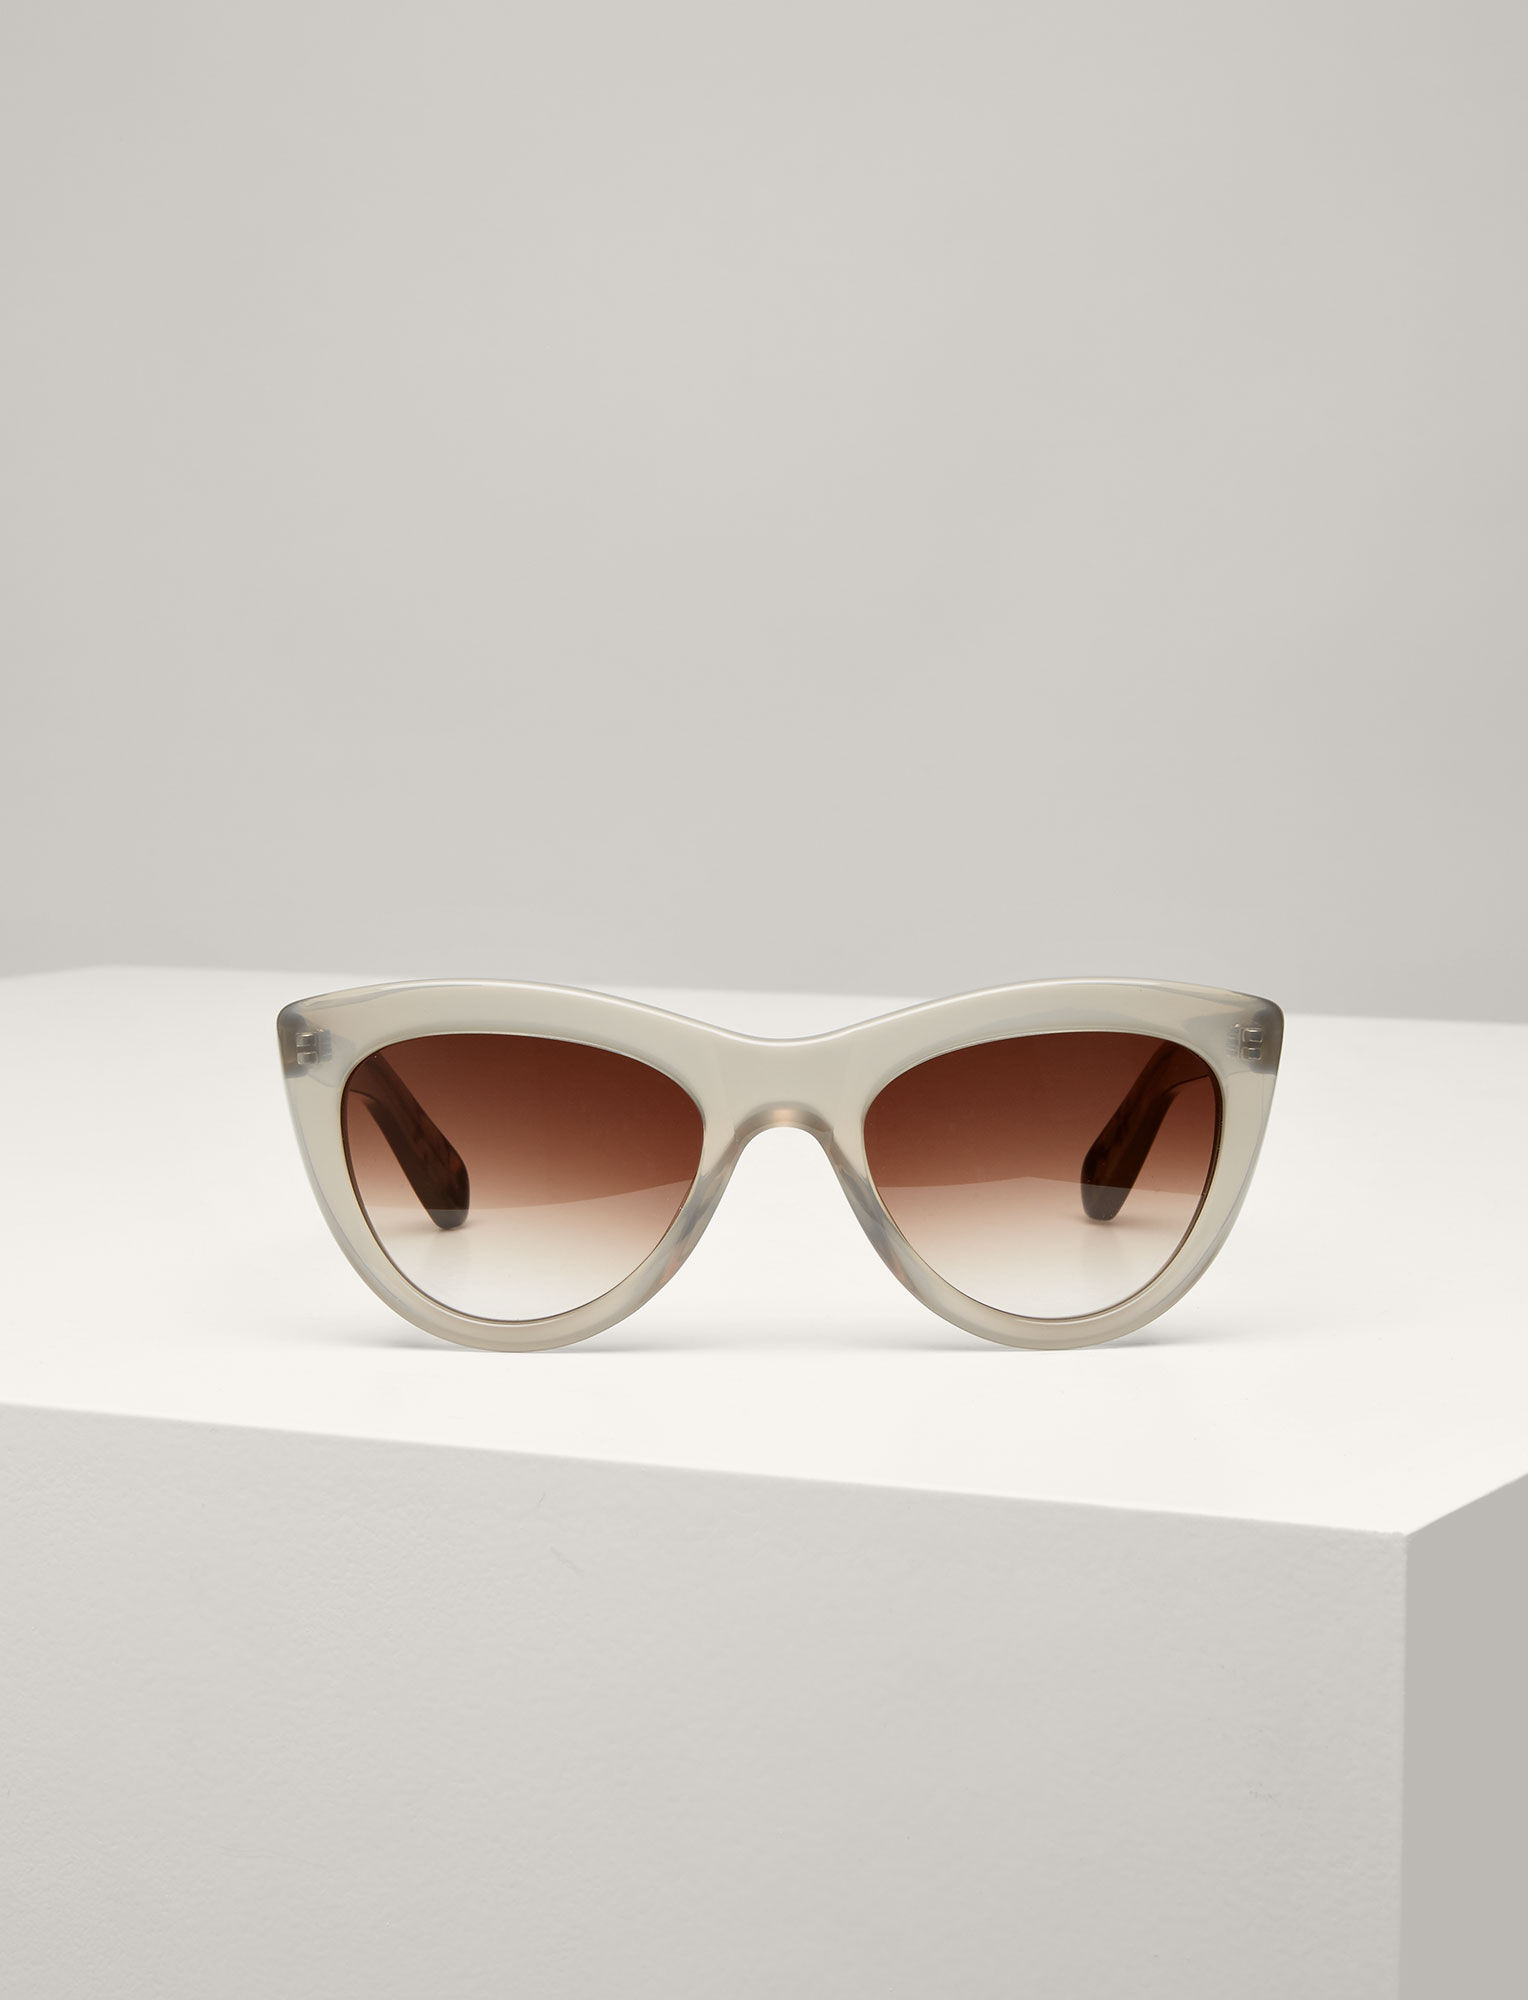 Joseph, Montaigne Sunglasses, in GREY